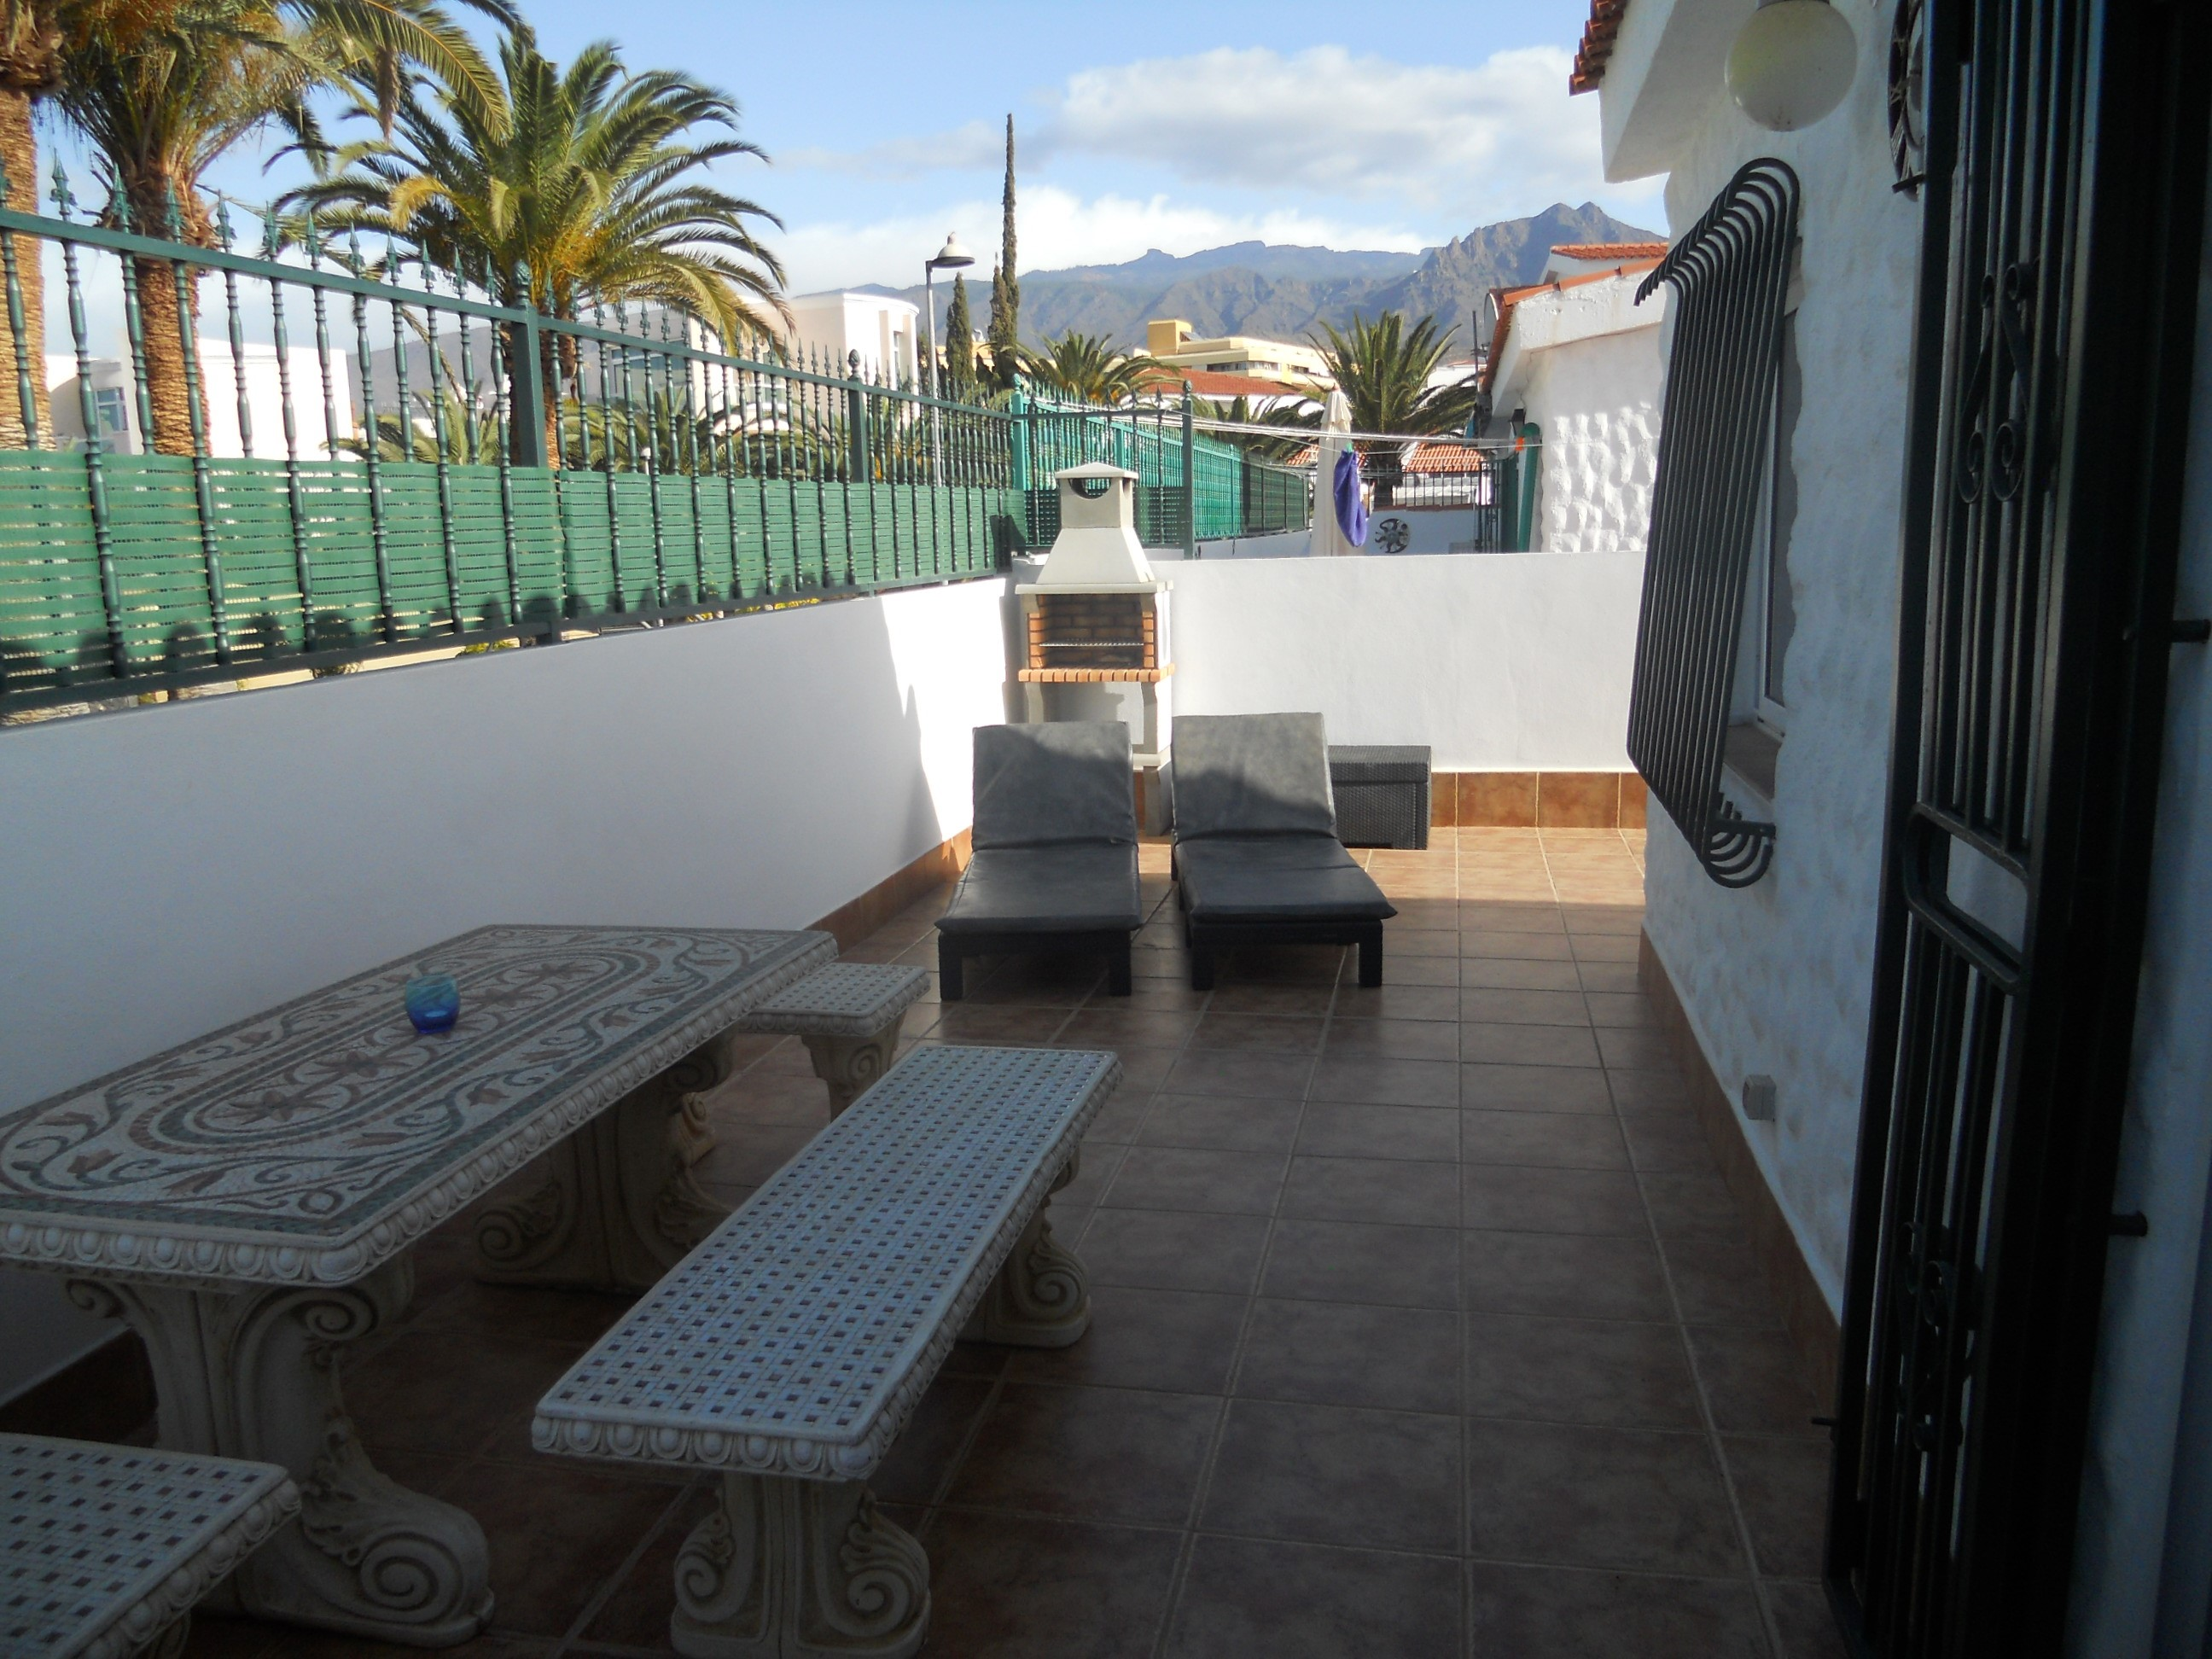 San Eugenio Bajo 2 Bed Bungalow For Sale